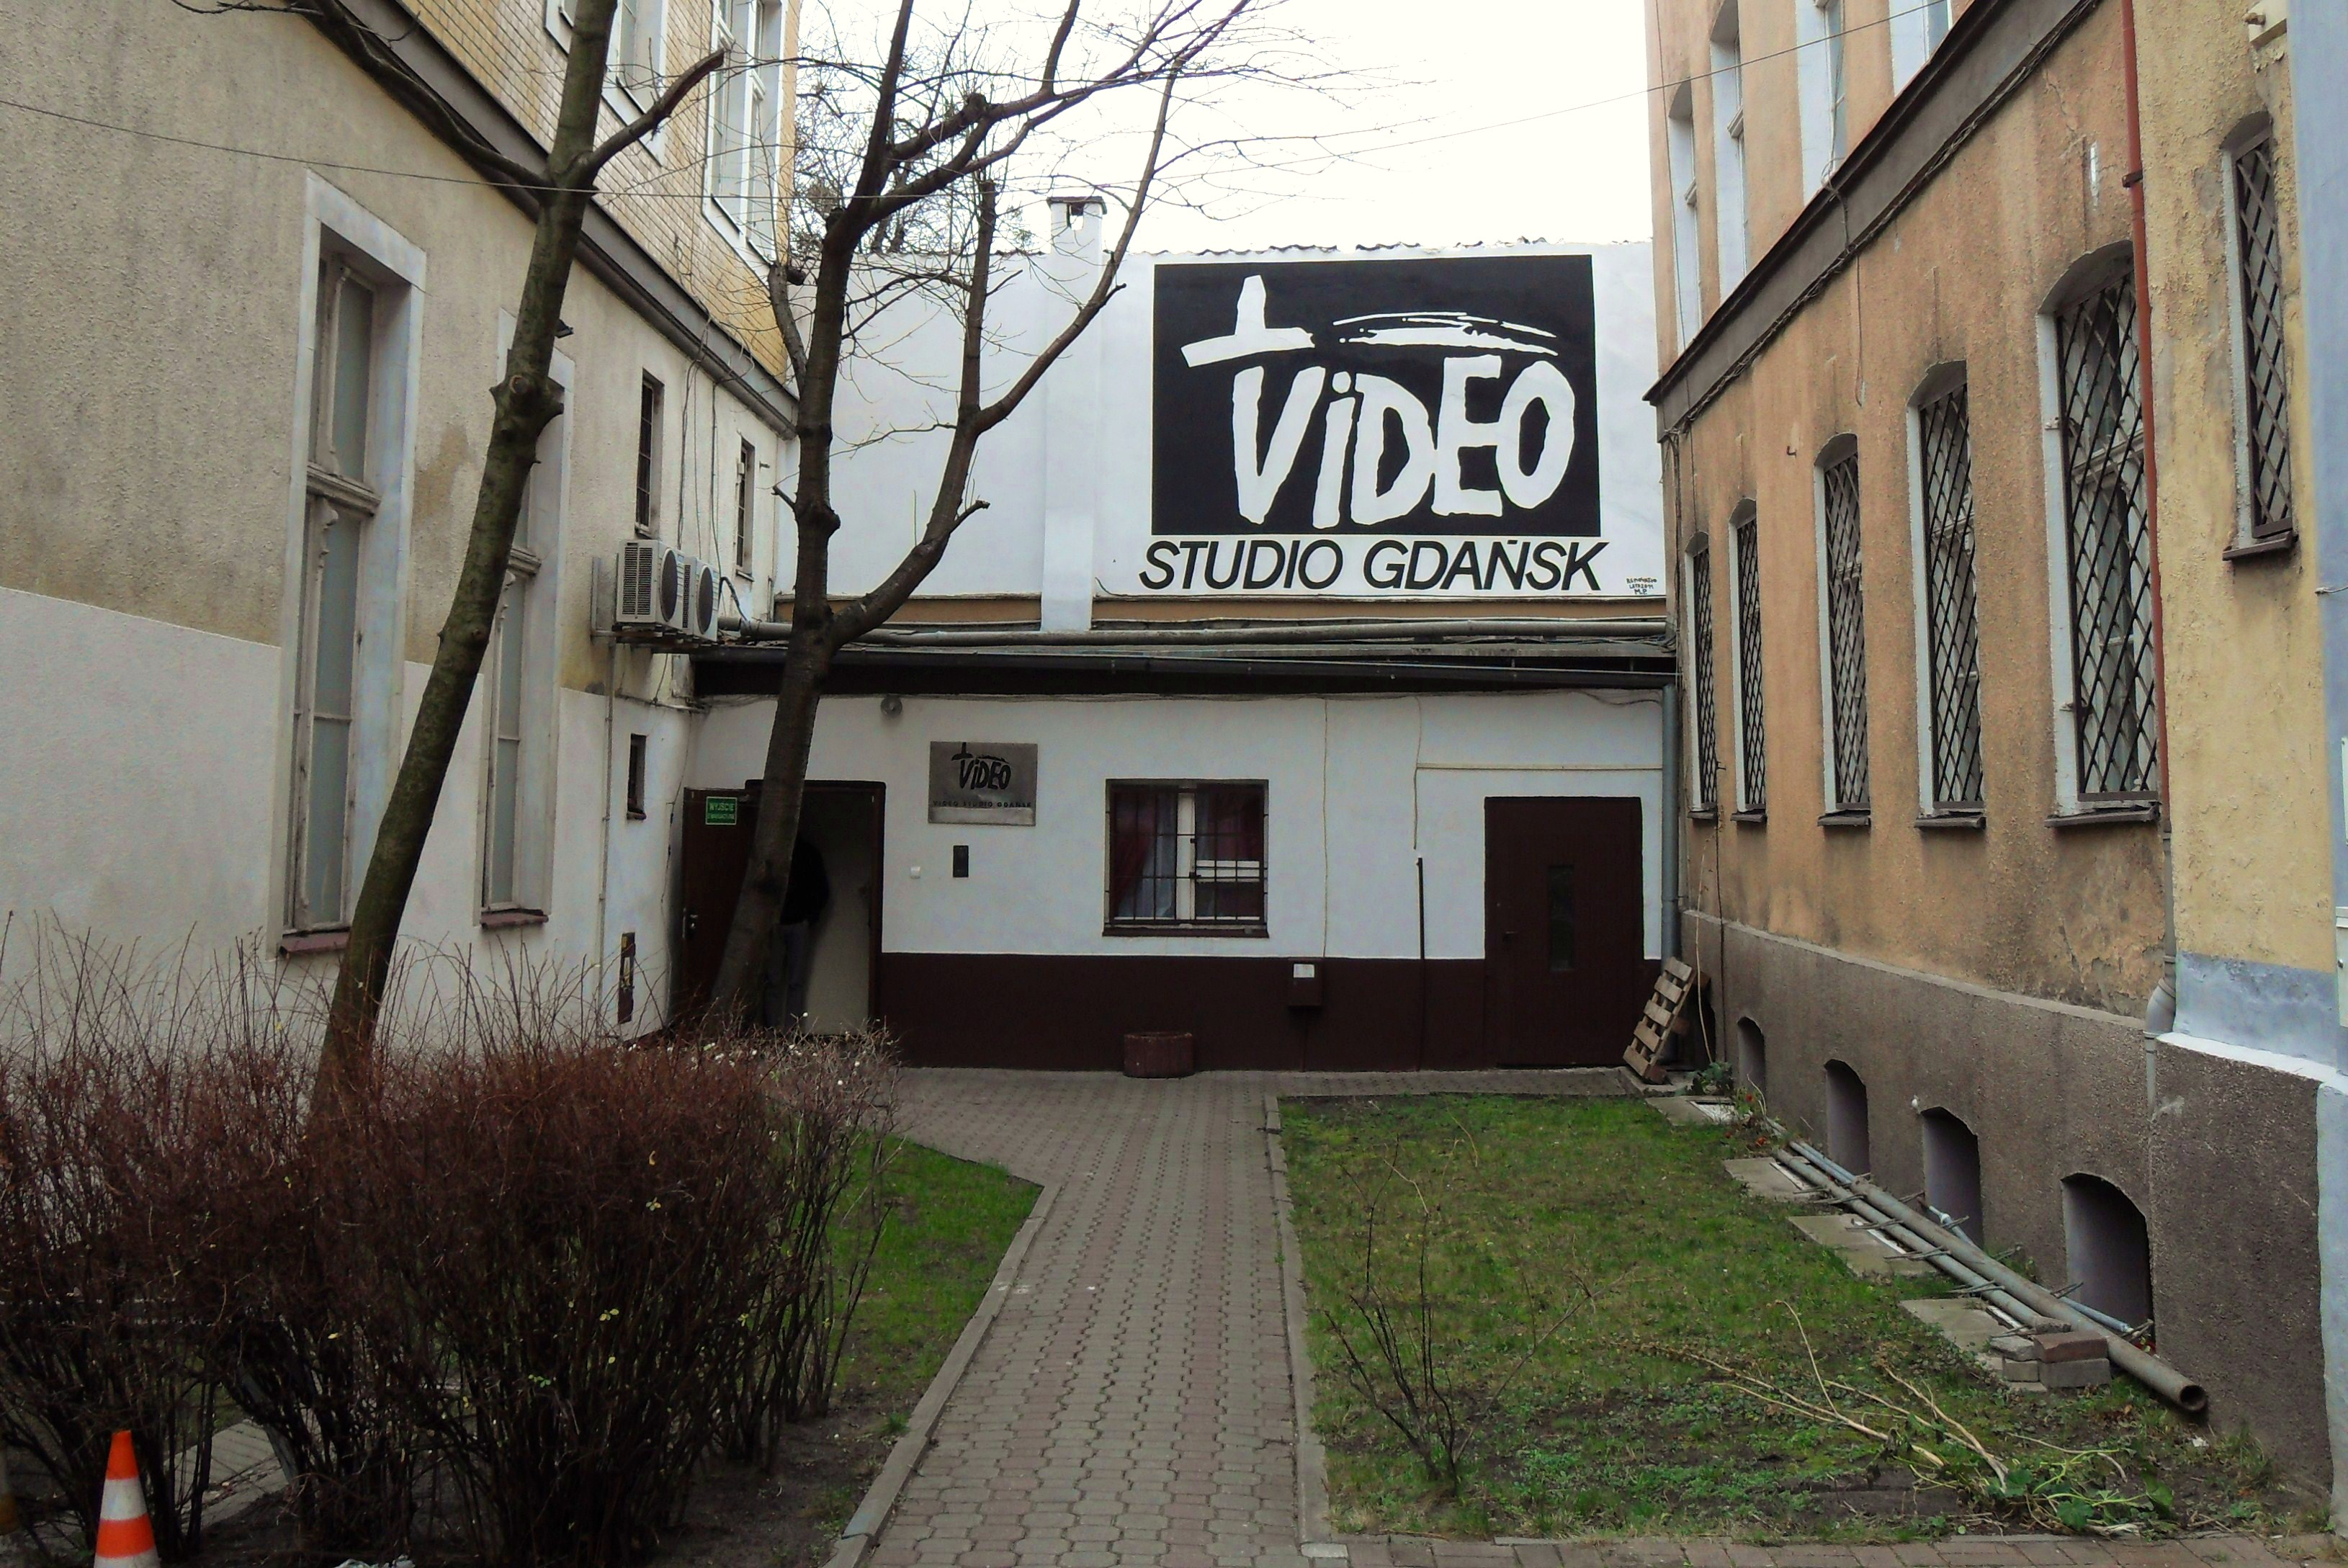 The headquarters of Video Studio Gdańsk.